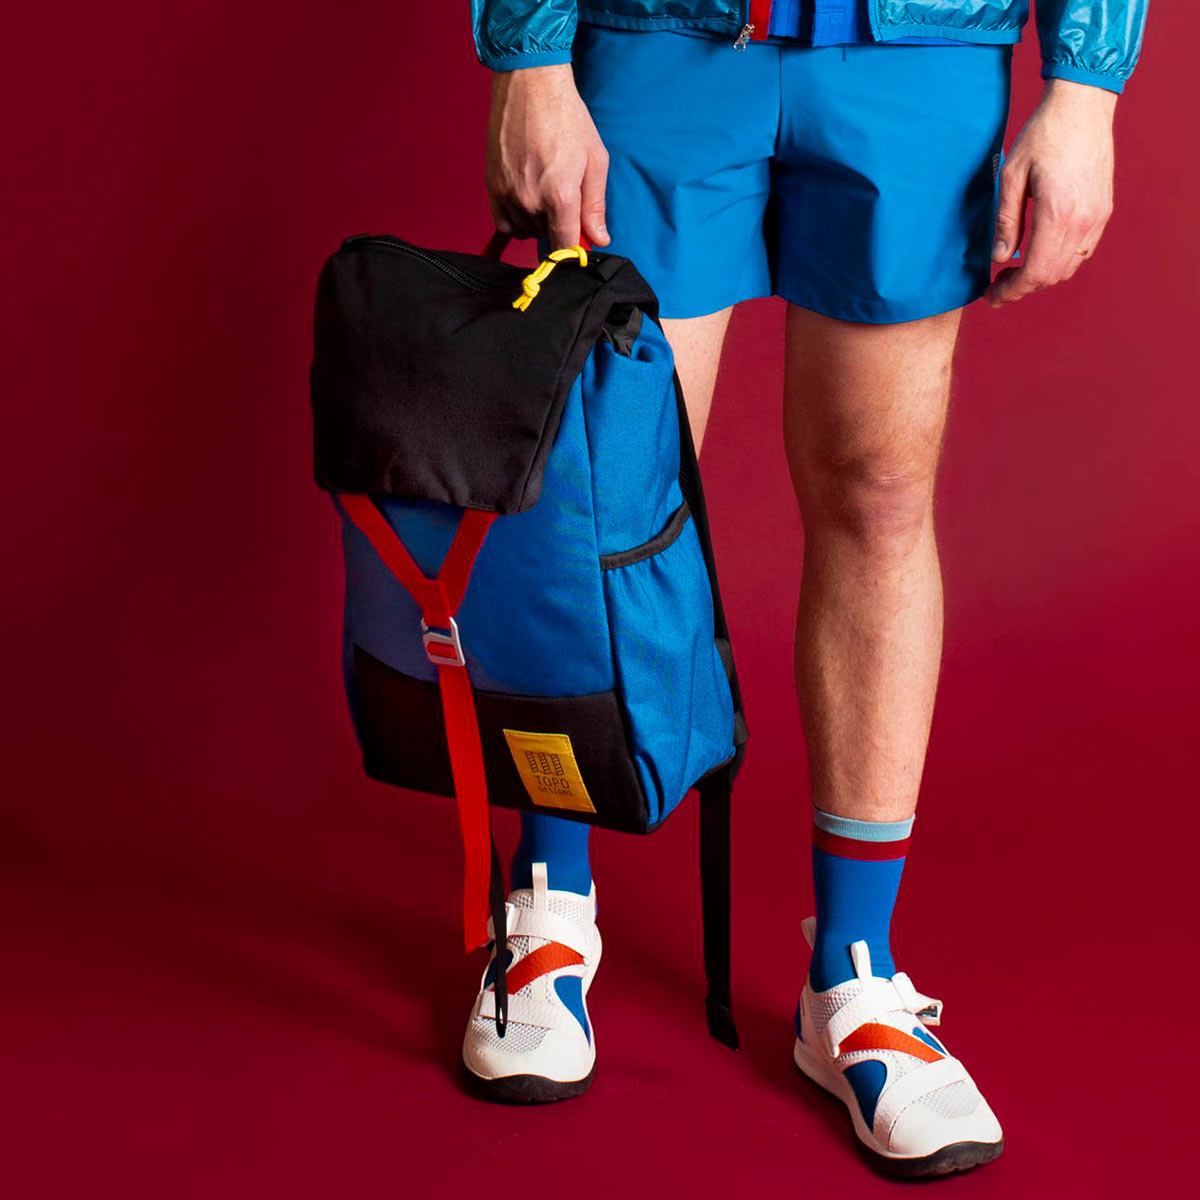 Topo Designs Y-Pack Blue/Black fuses classic style and modern functionality